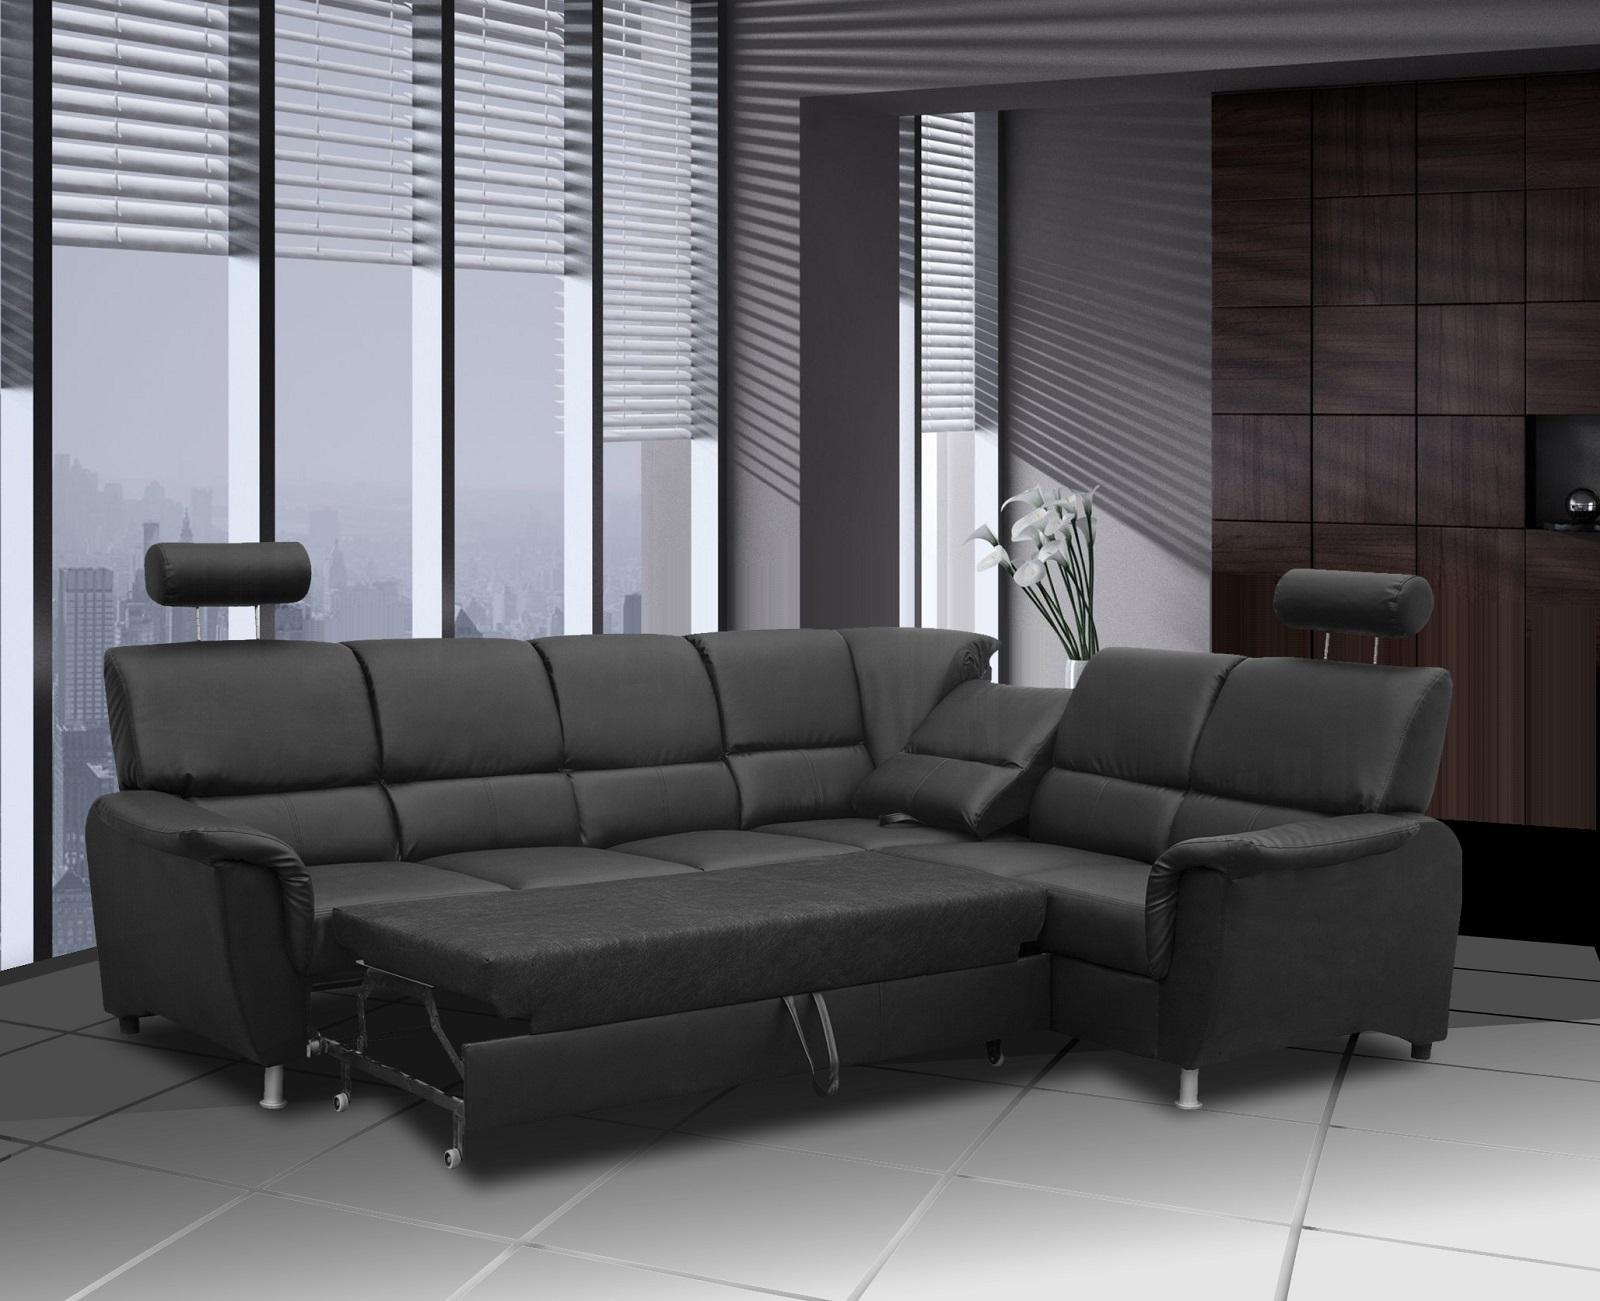 13 Sleeper Sofa San Diego | Carehouse regarding Sleeper Sofas San Diego